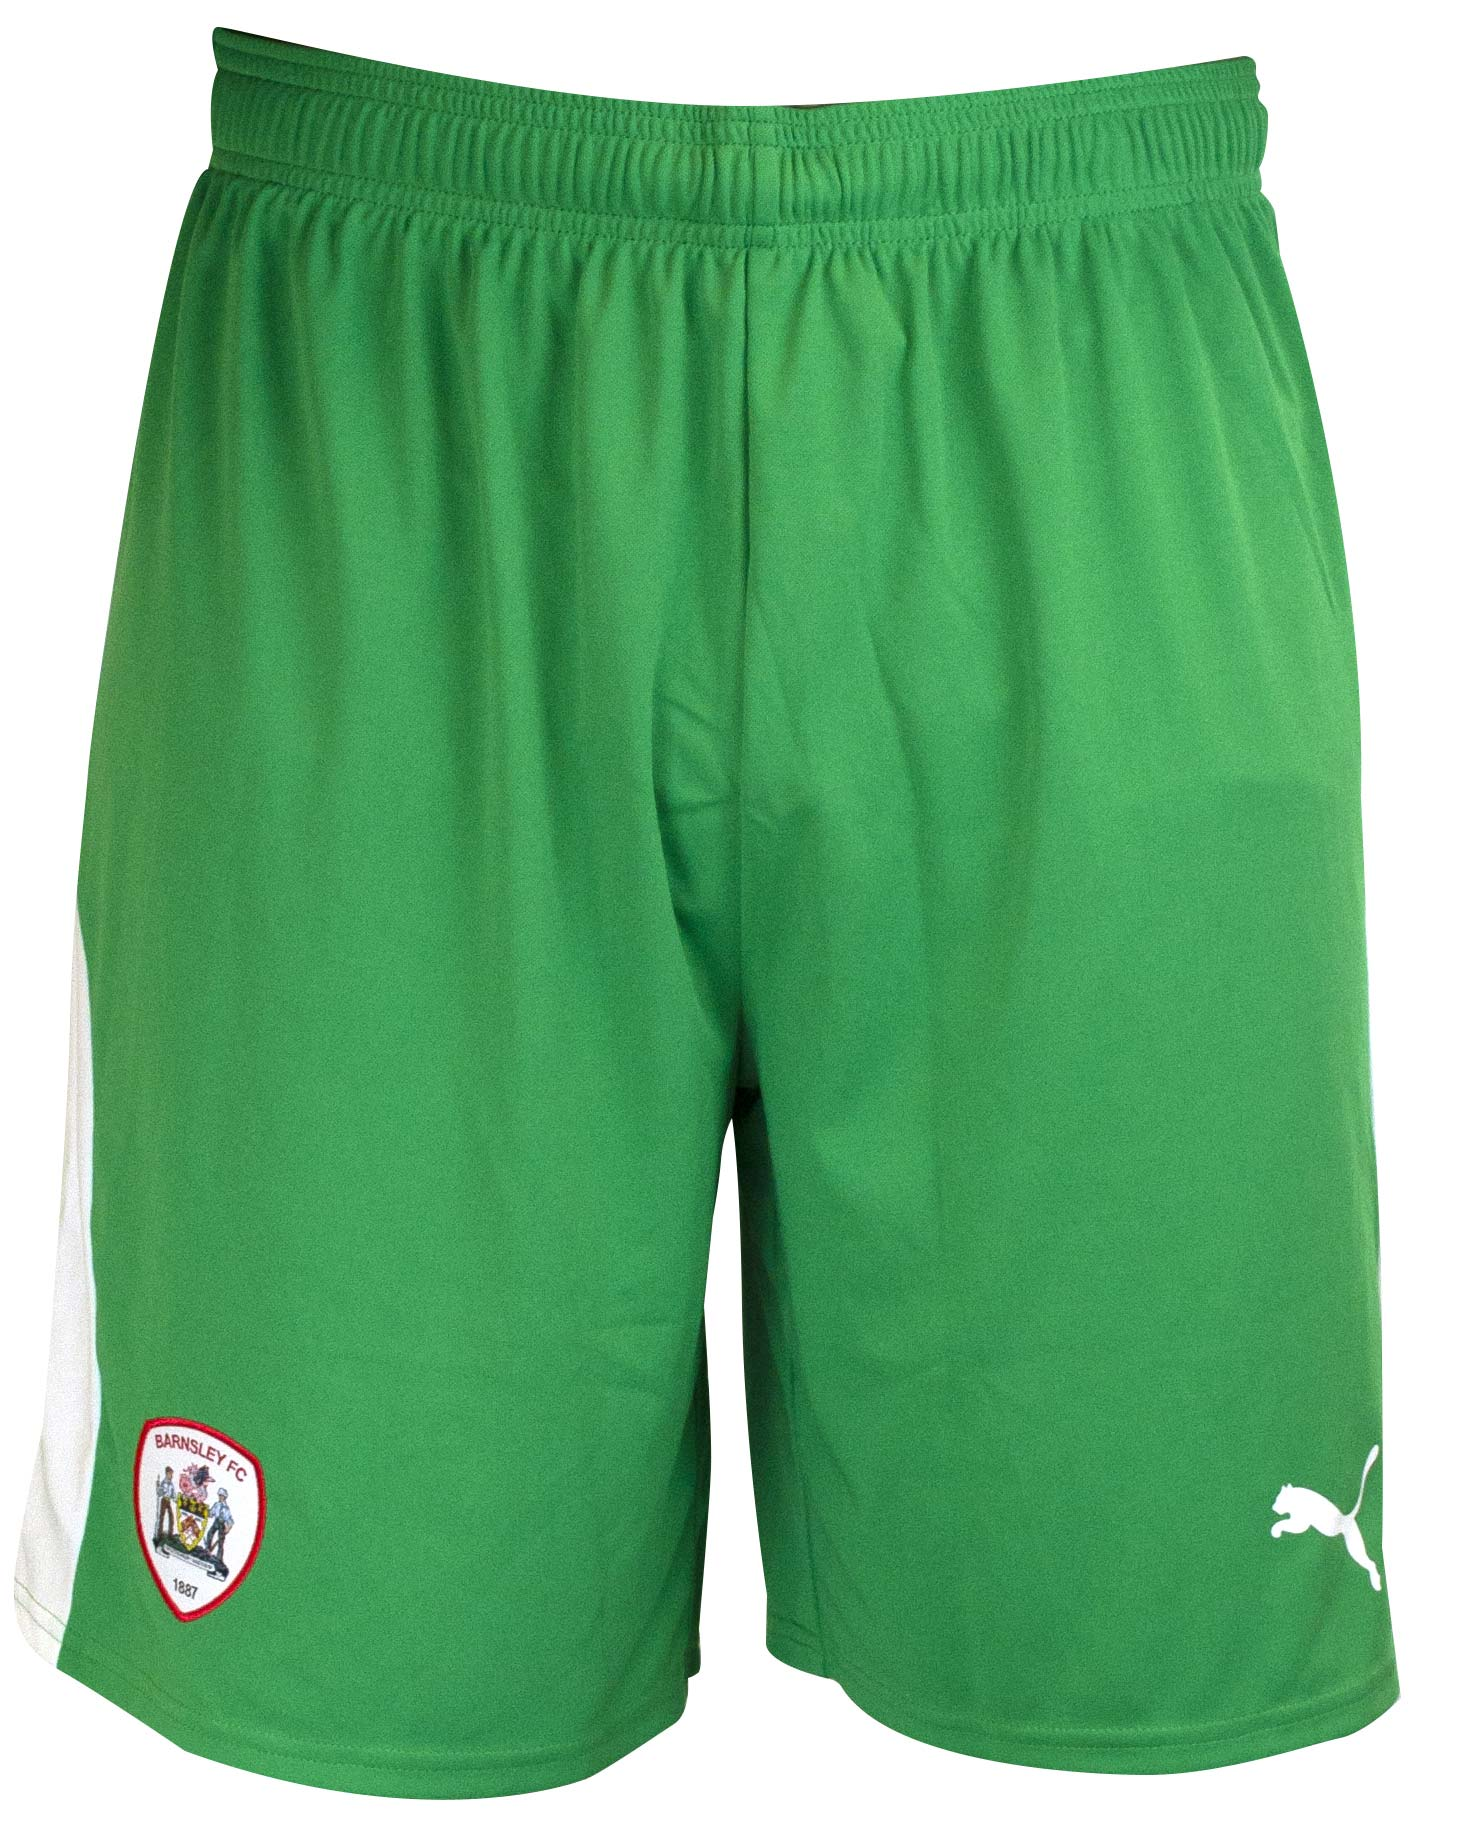 Puma Adult Home Goalkeeper Short 18